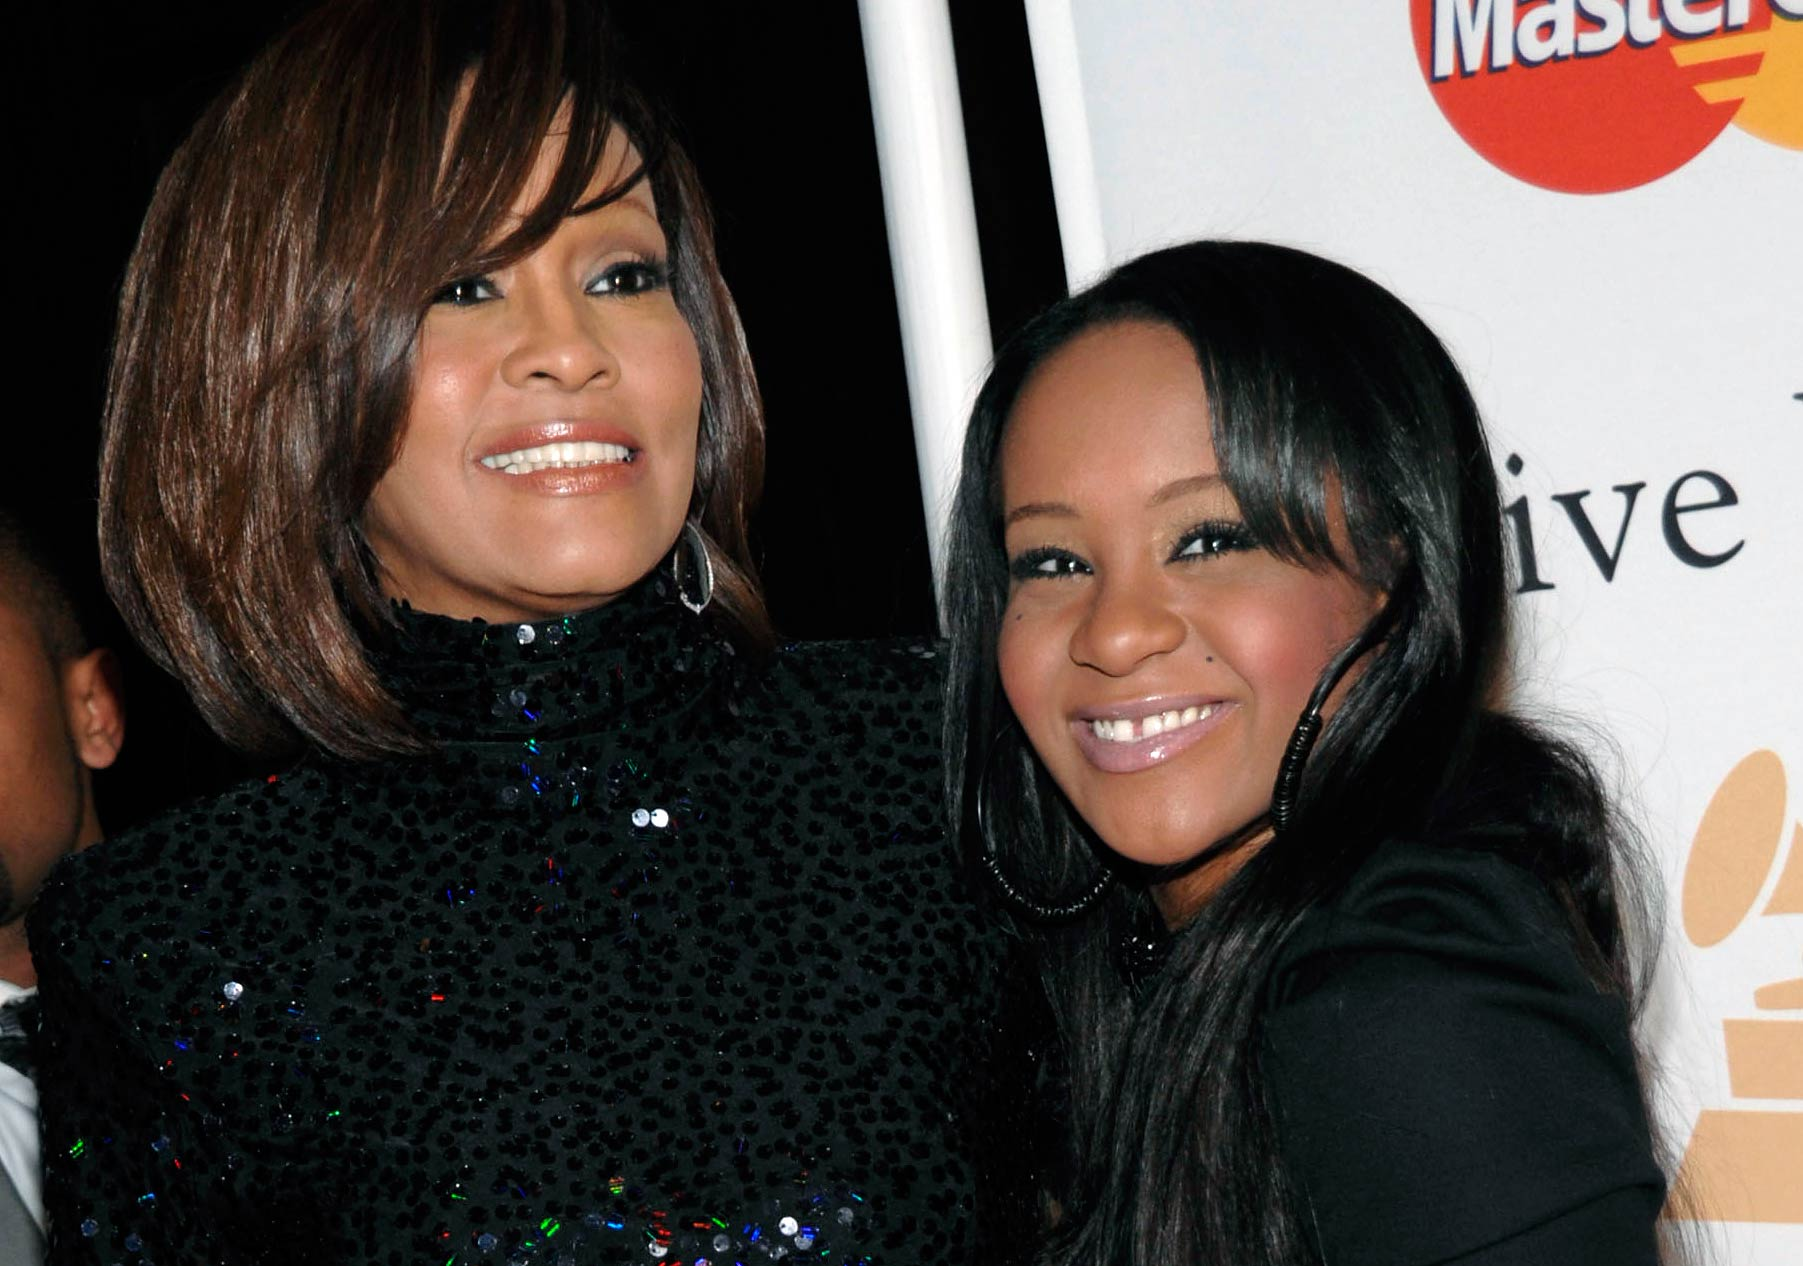 Whitney Houston, left, and her daughter Bobbi Kristina Brown arrive at an event in Beverly Hills, Calif. on Feb. 12, 2011.